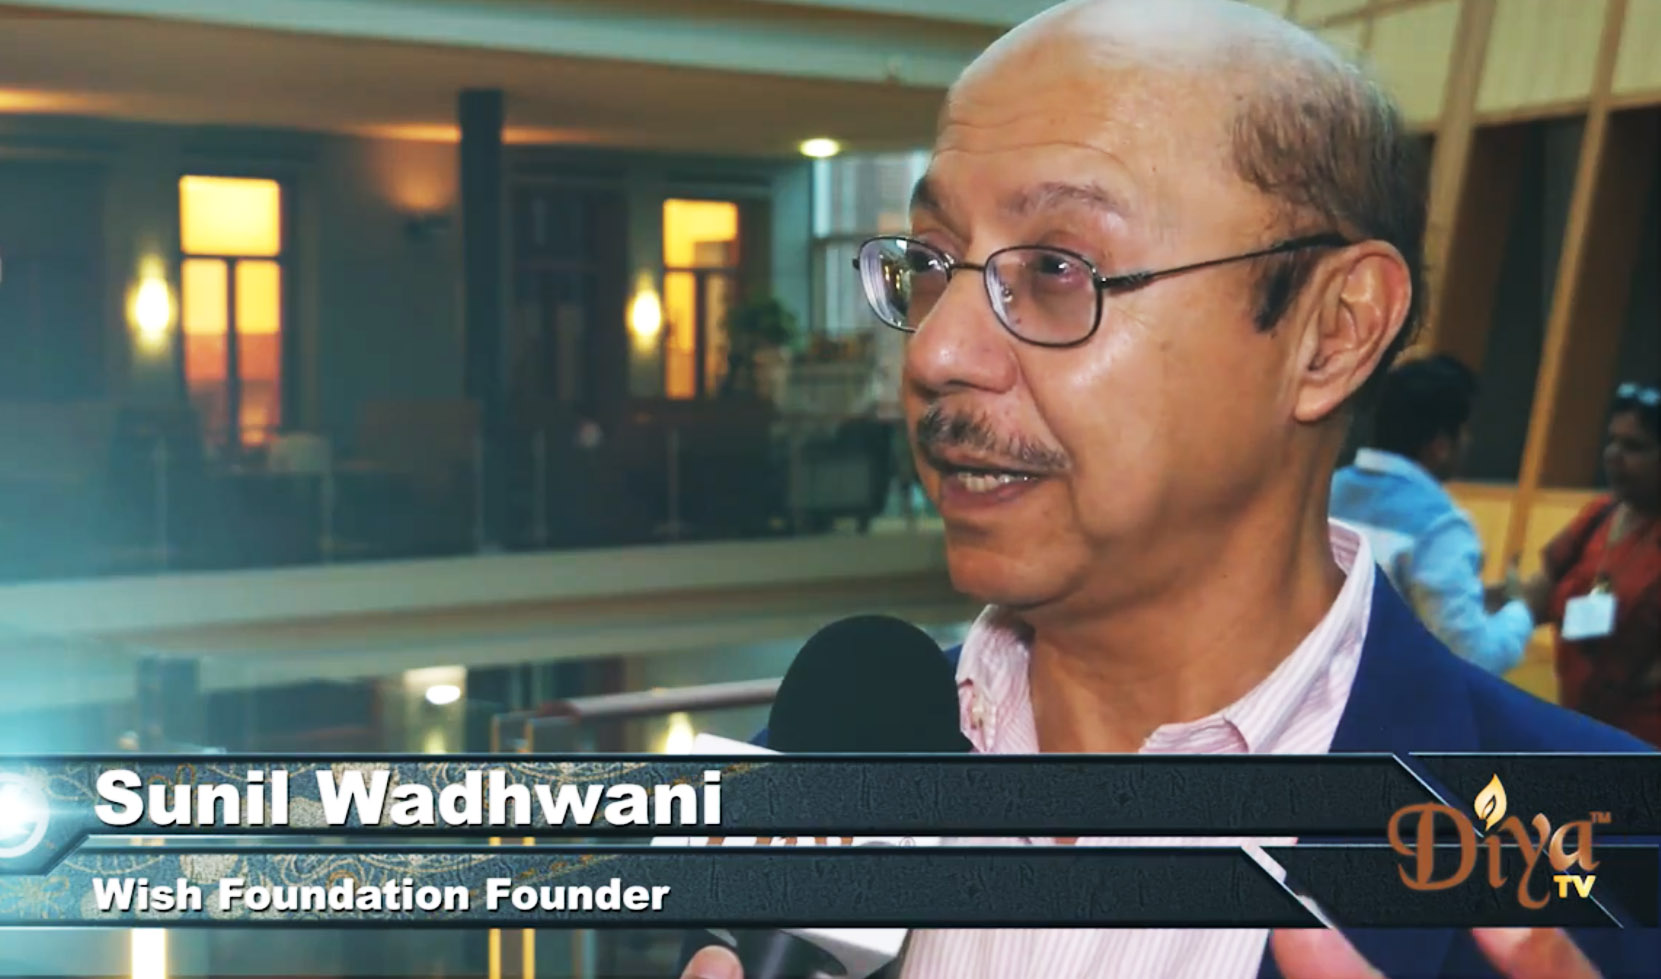 Sunil Wadhwani of Wish Foundation talks to Diya TV about the need for Indian Americans to give back more than just their time and talent.